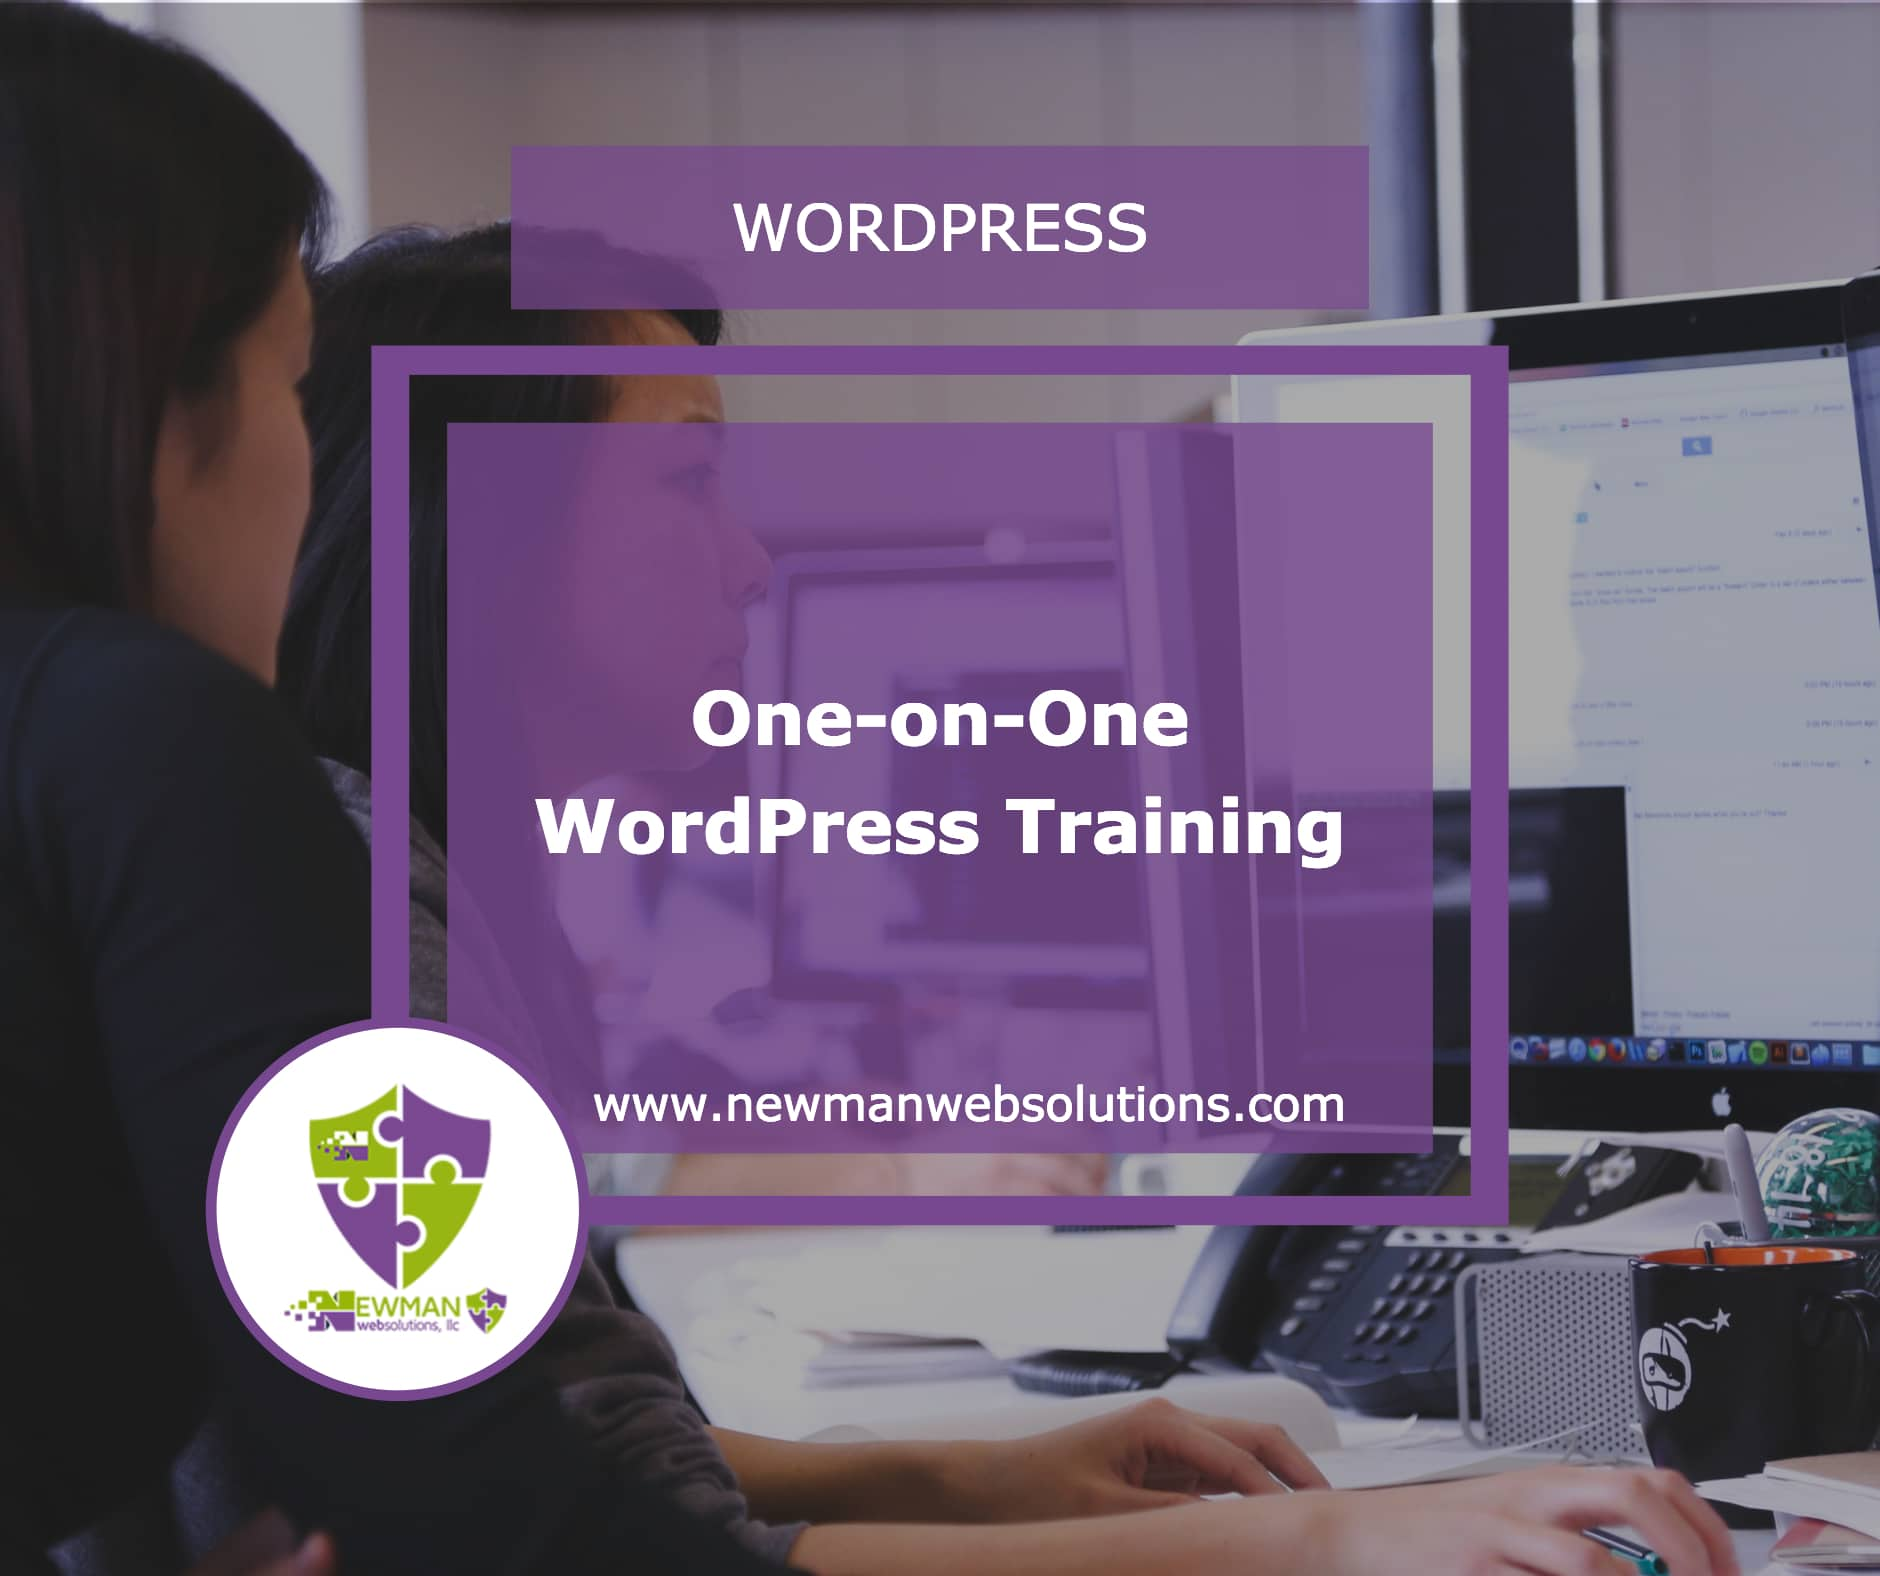 Atlanta One-on-One WordPress Training featured image for blog post